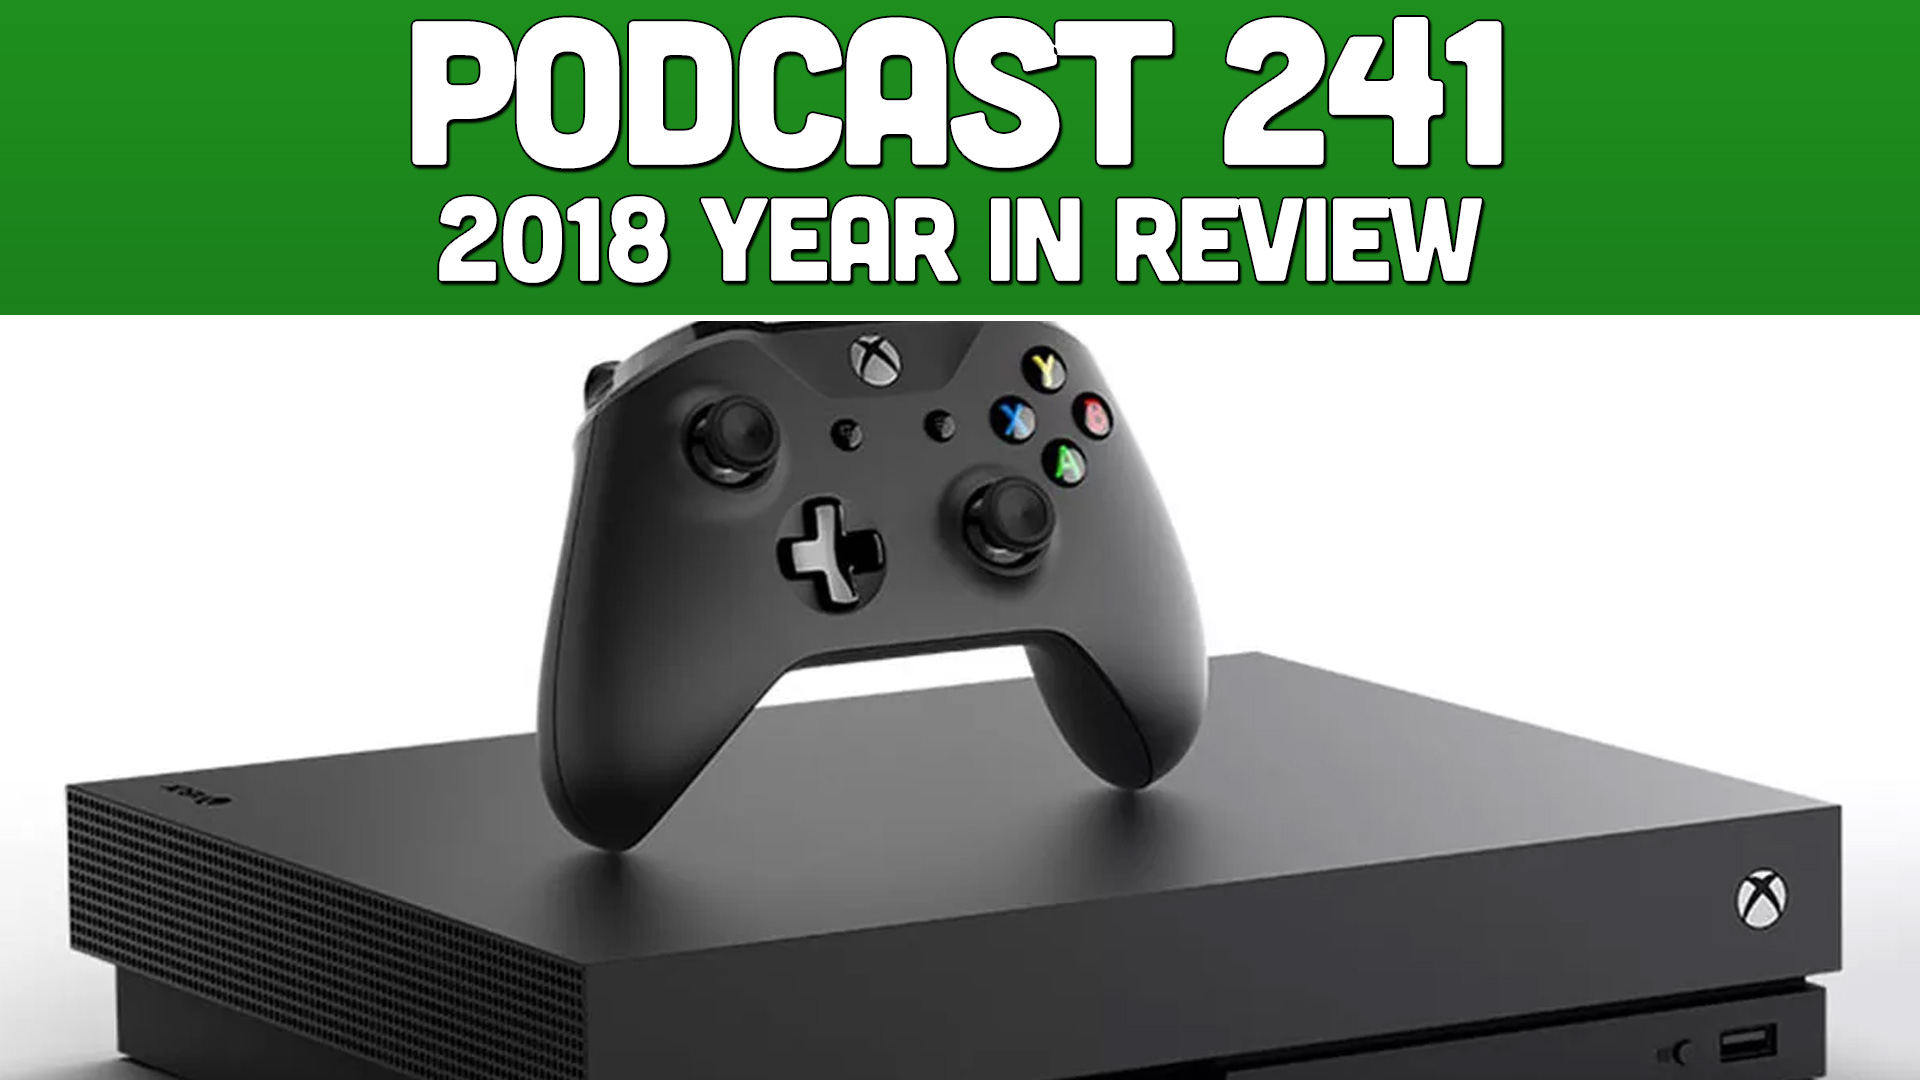 Podcast 241 2018 Year In Review \u2014 XONEBROS